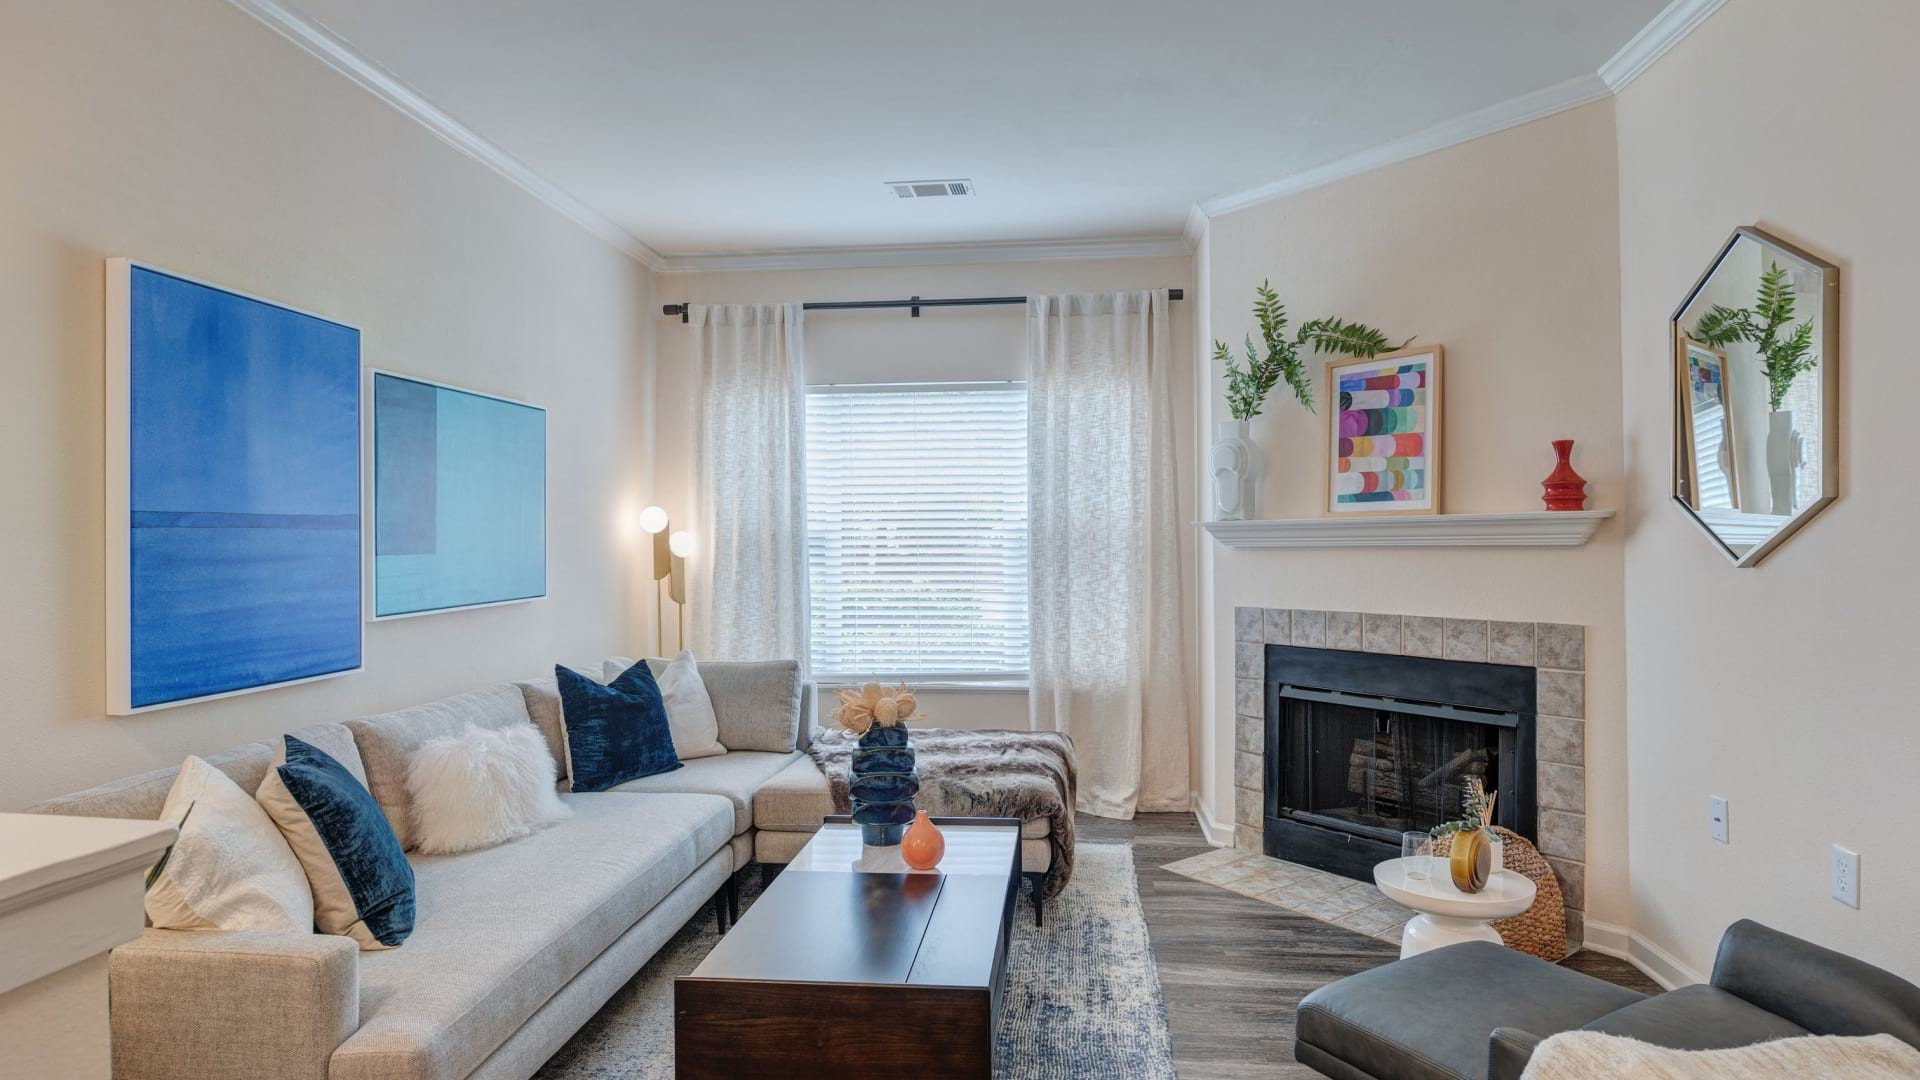 Luxury Apartment Living Room With Fireplace At Our Preston Apartments In Cary, NC